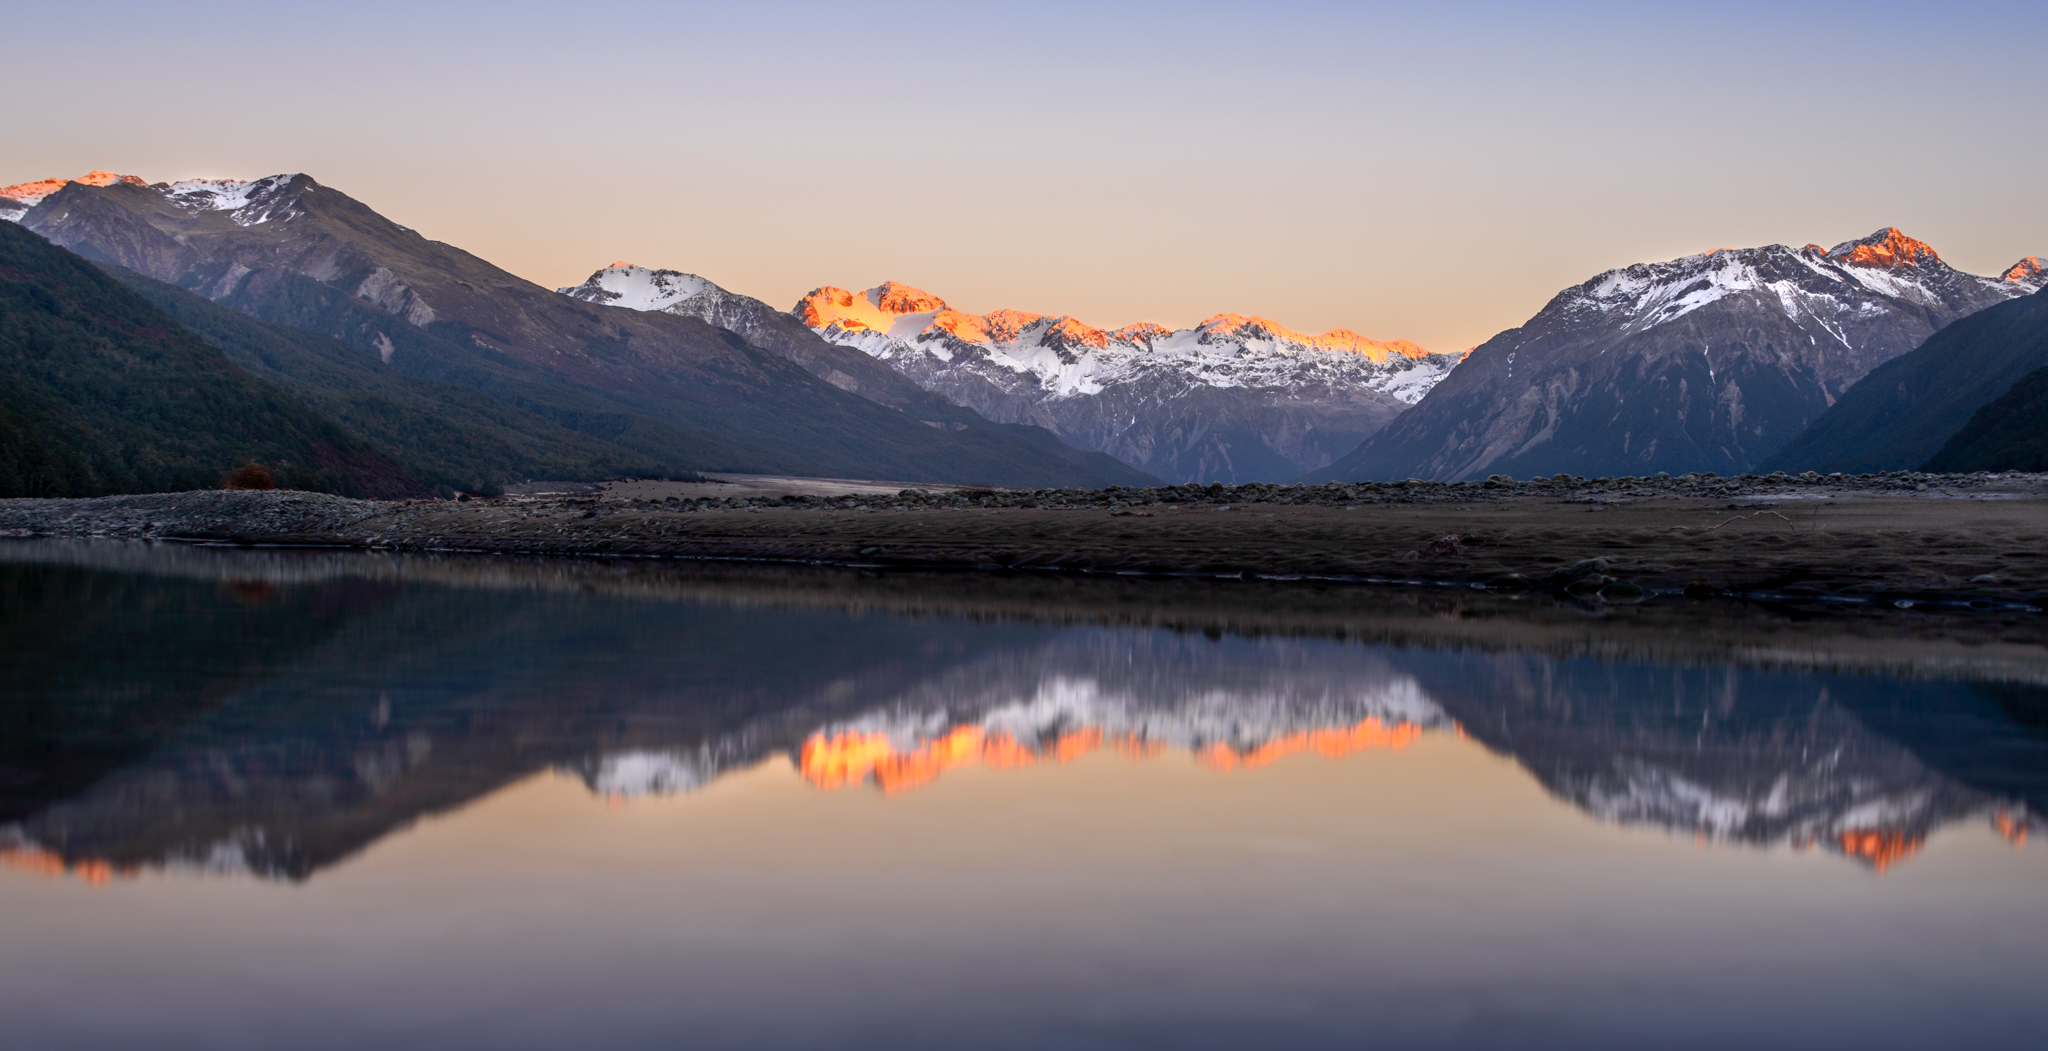 """""""There's a place I go""""  Mt Harper, Mt Davie and Mt Stewart lit by the coming dawn, Waimakariri River valley, Arthurs Park National Park, New Zealand  D800, ISO100, f8, 2.5sec, 38mm, Lee Litle Stopper ND Filter"""